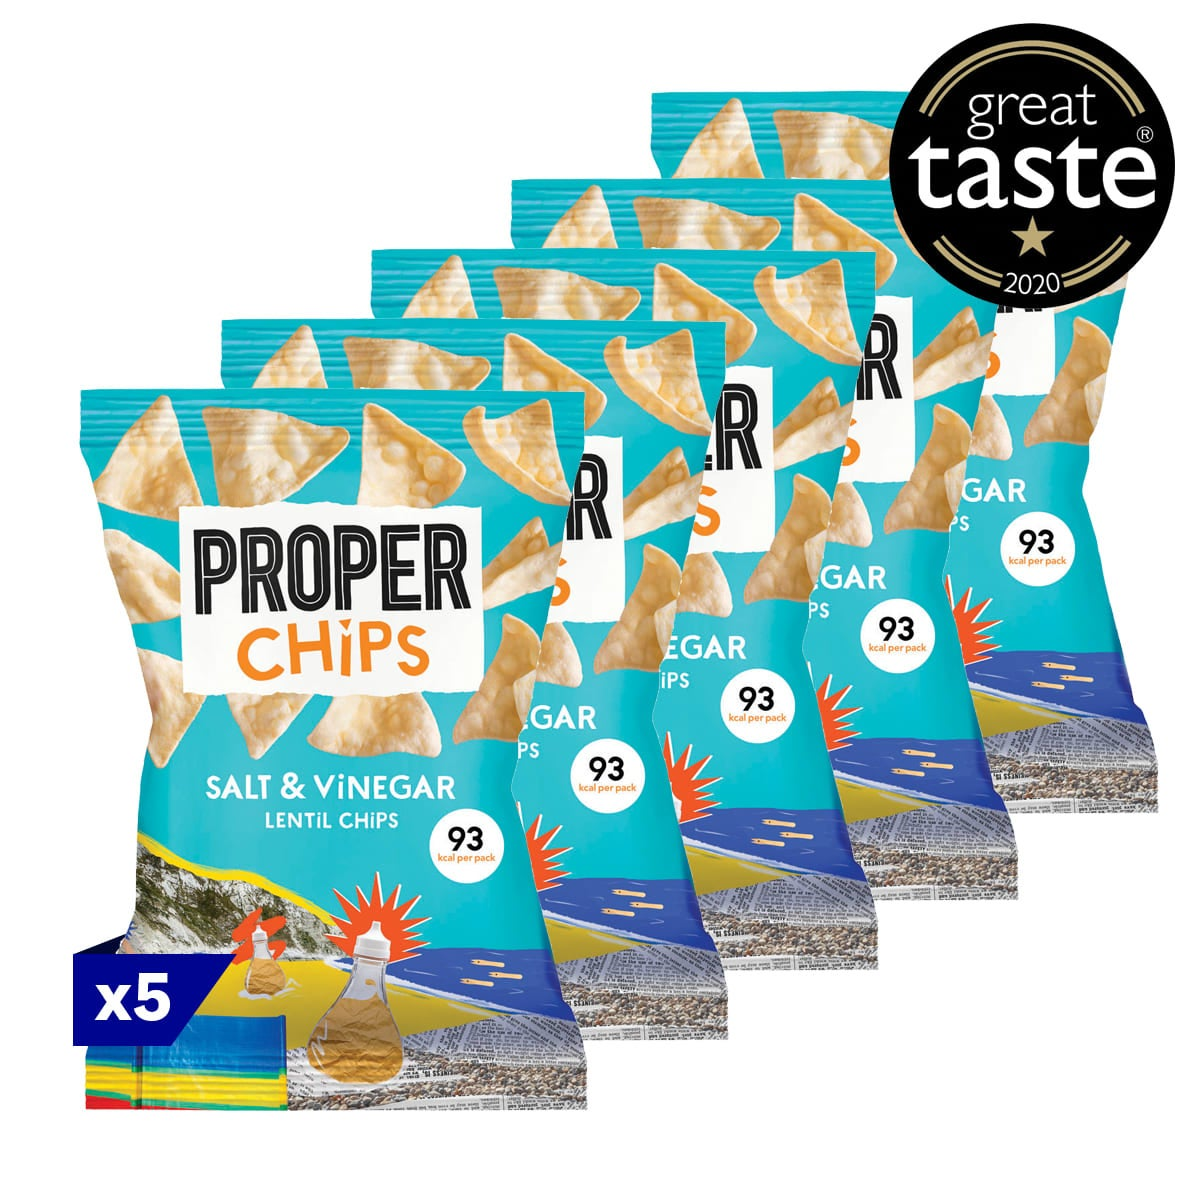 Pack of 5, Salt & Vinegar Properchips, 20g bag, lentil chip, apple cider vinegar, sea-salted, 3 SmartPoints values, gluten free, suitable for vegans